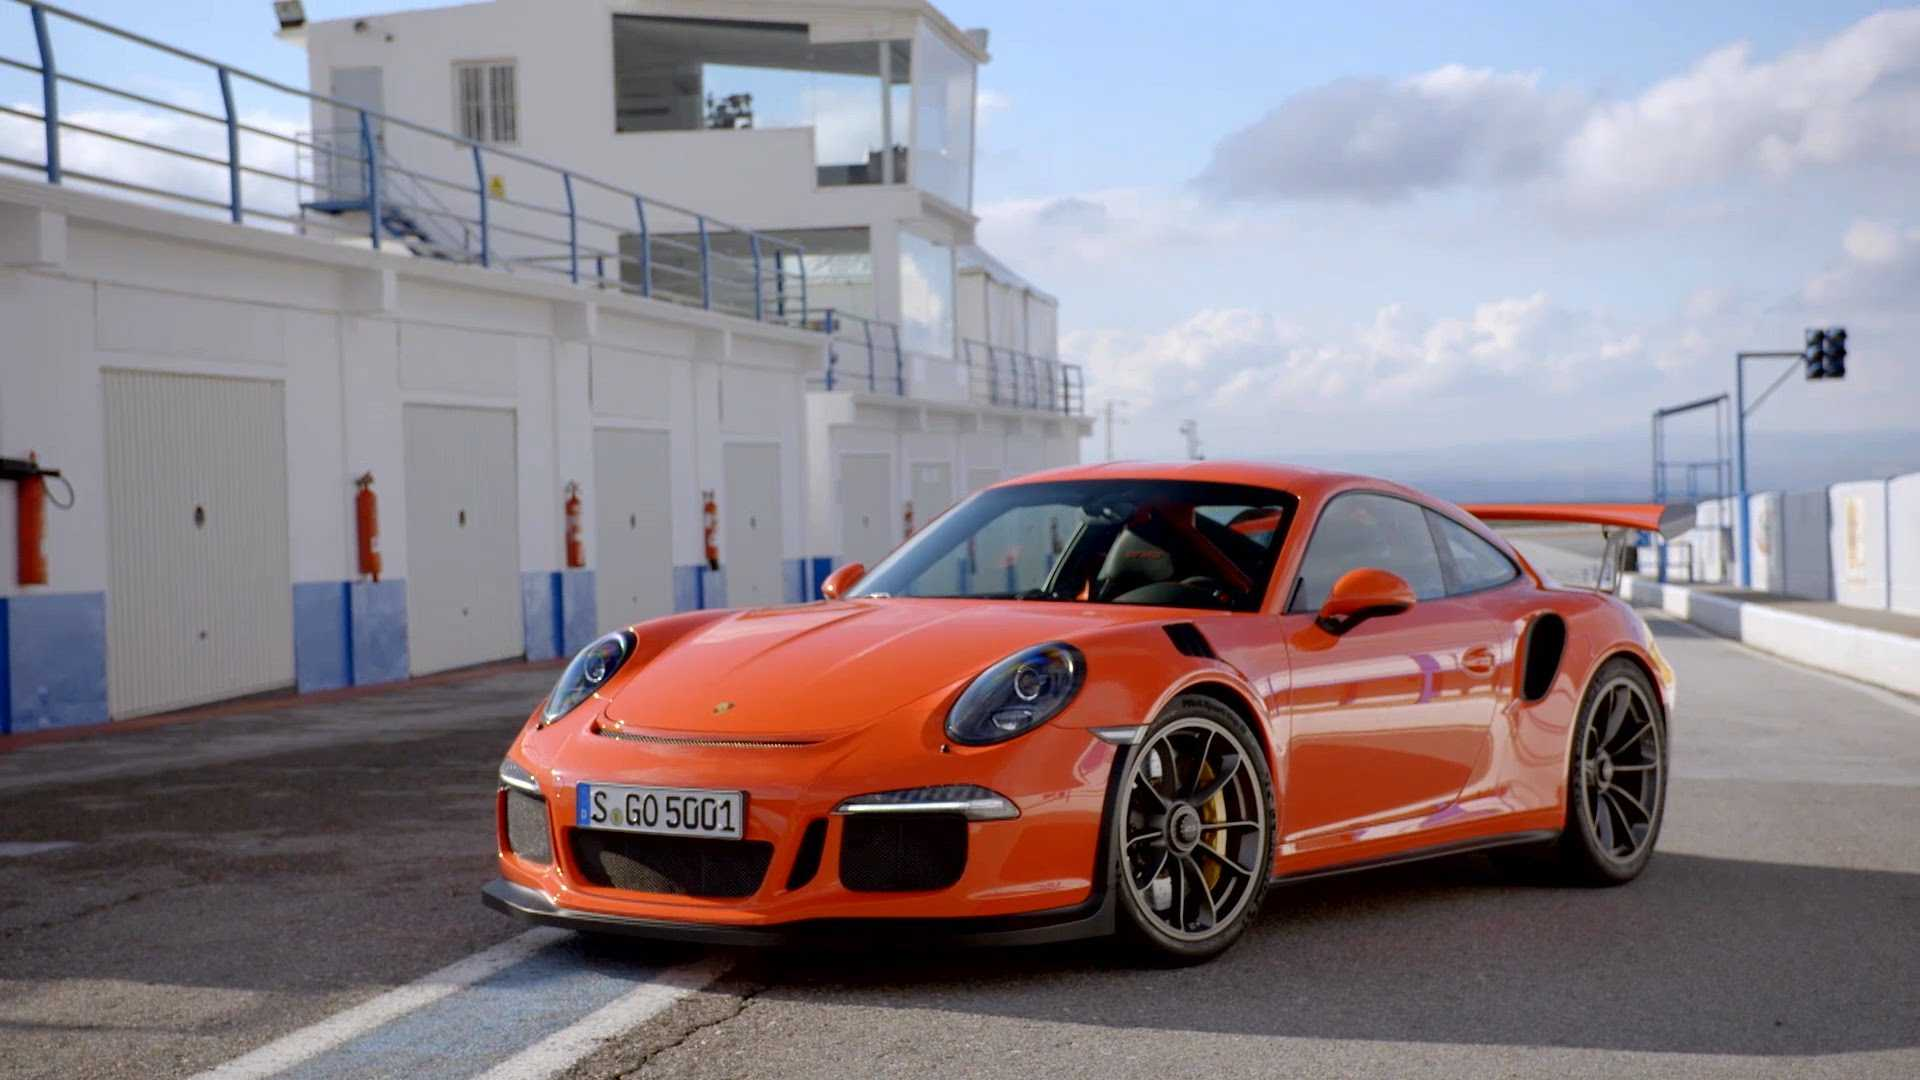 Porsche 911 GT3 RS has Aerodynamic Issues, Official Statement Awaited